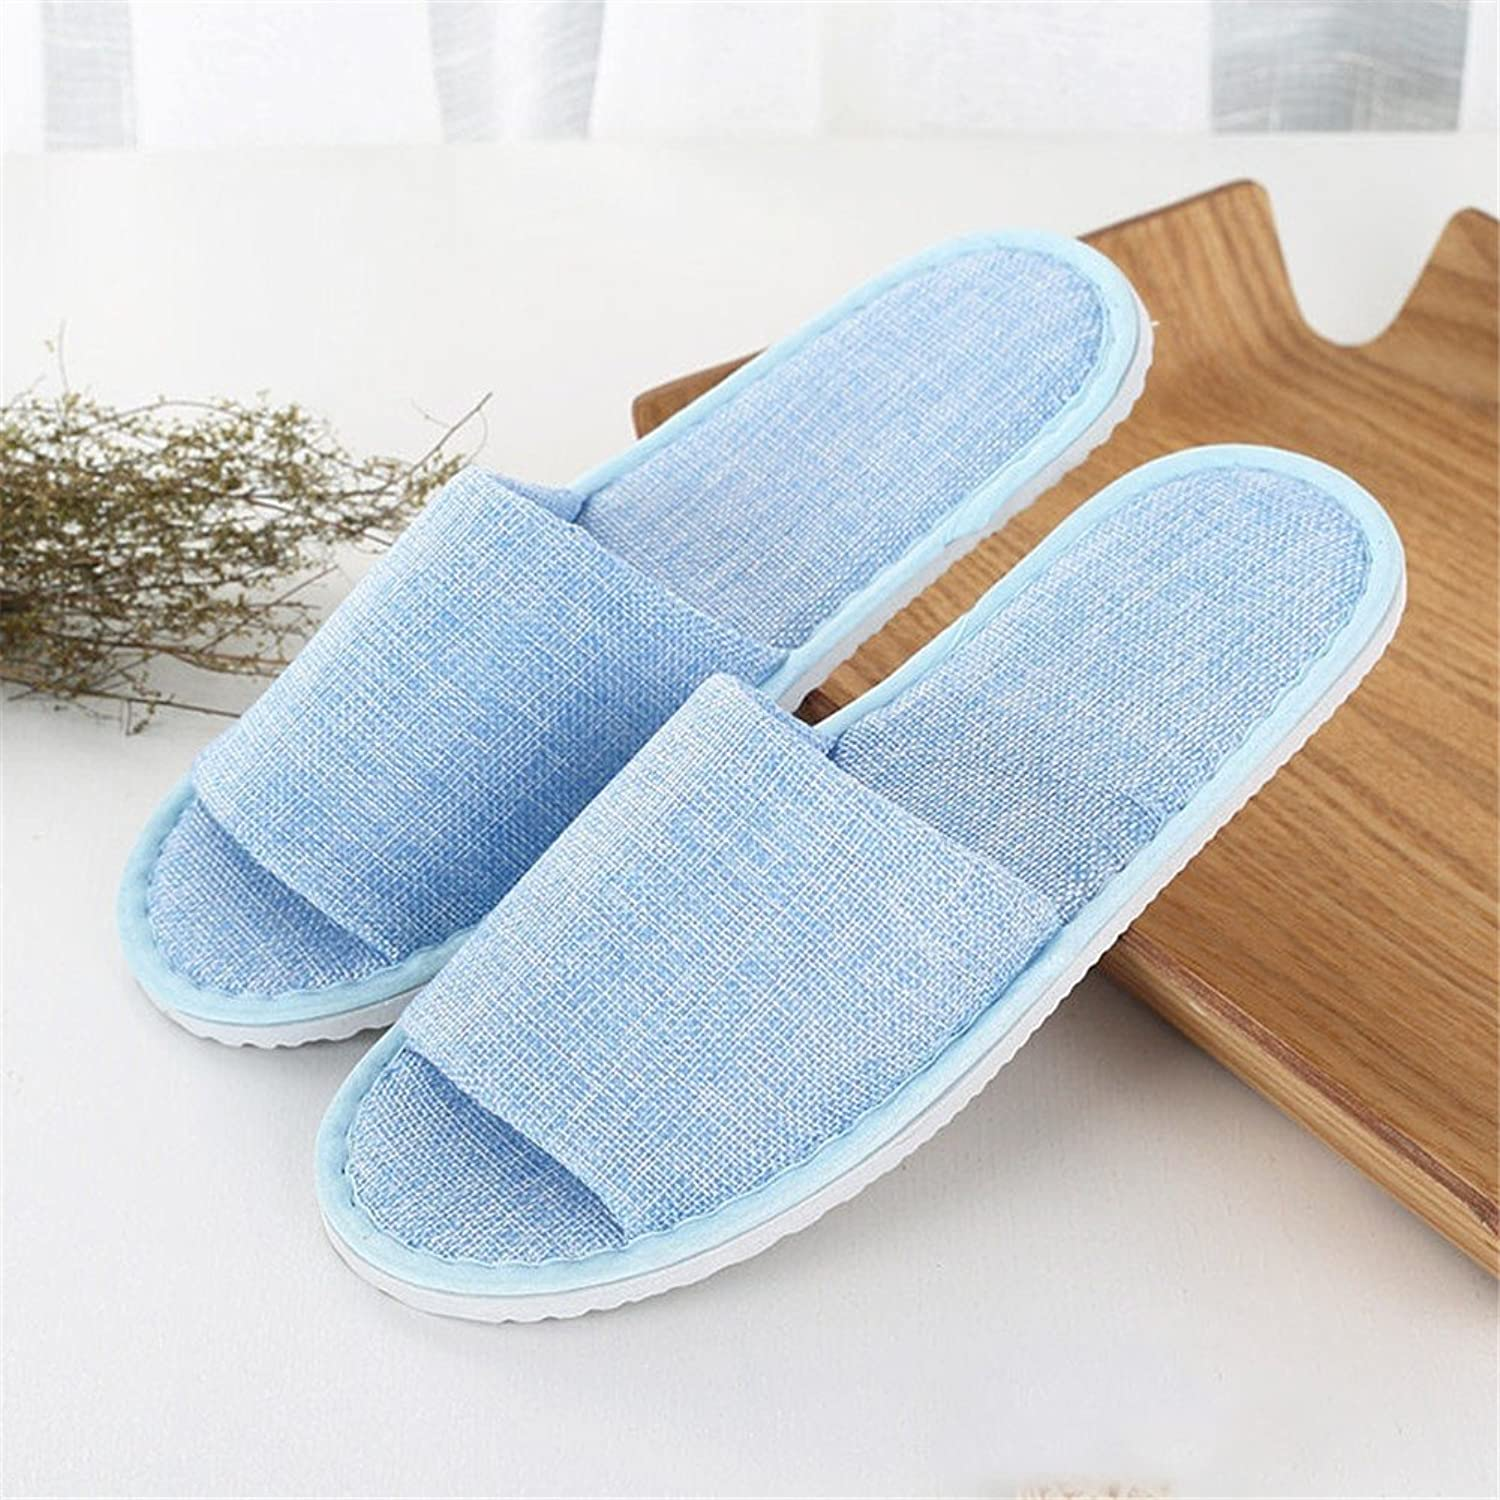 One Size Spa Slippers for Guests Closed Toe Slippers for Spa, Party Guest, Hotel and Travel, Washable and Non-Disposable,Linen